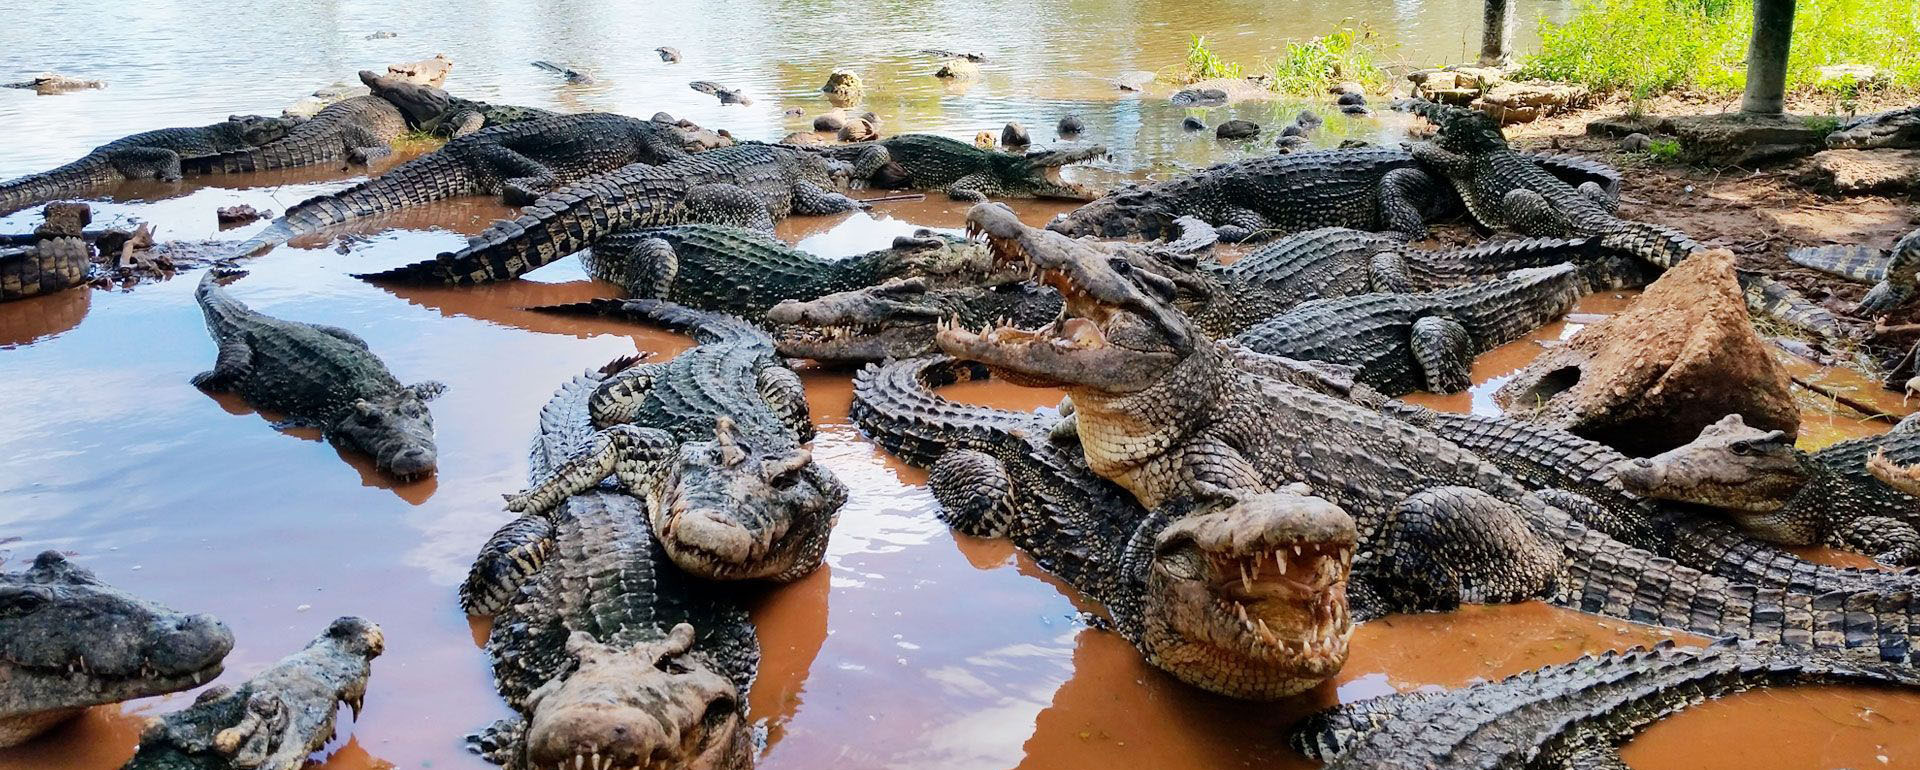 Crocodiles in Cienaga de Zapata